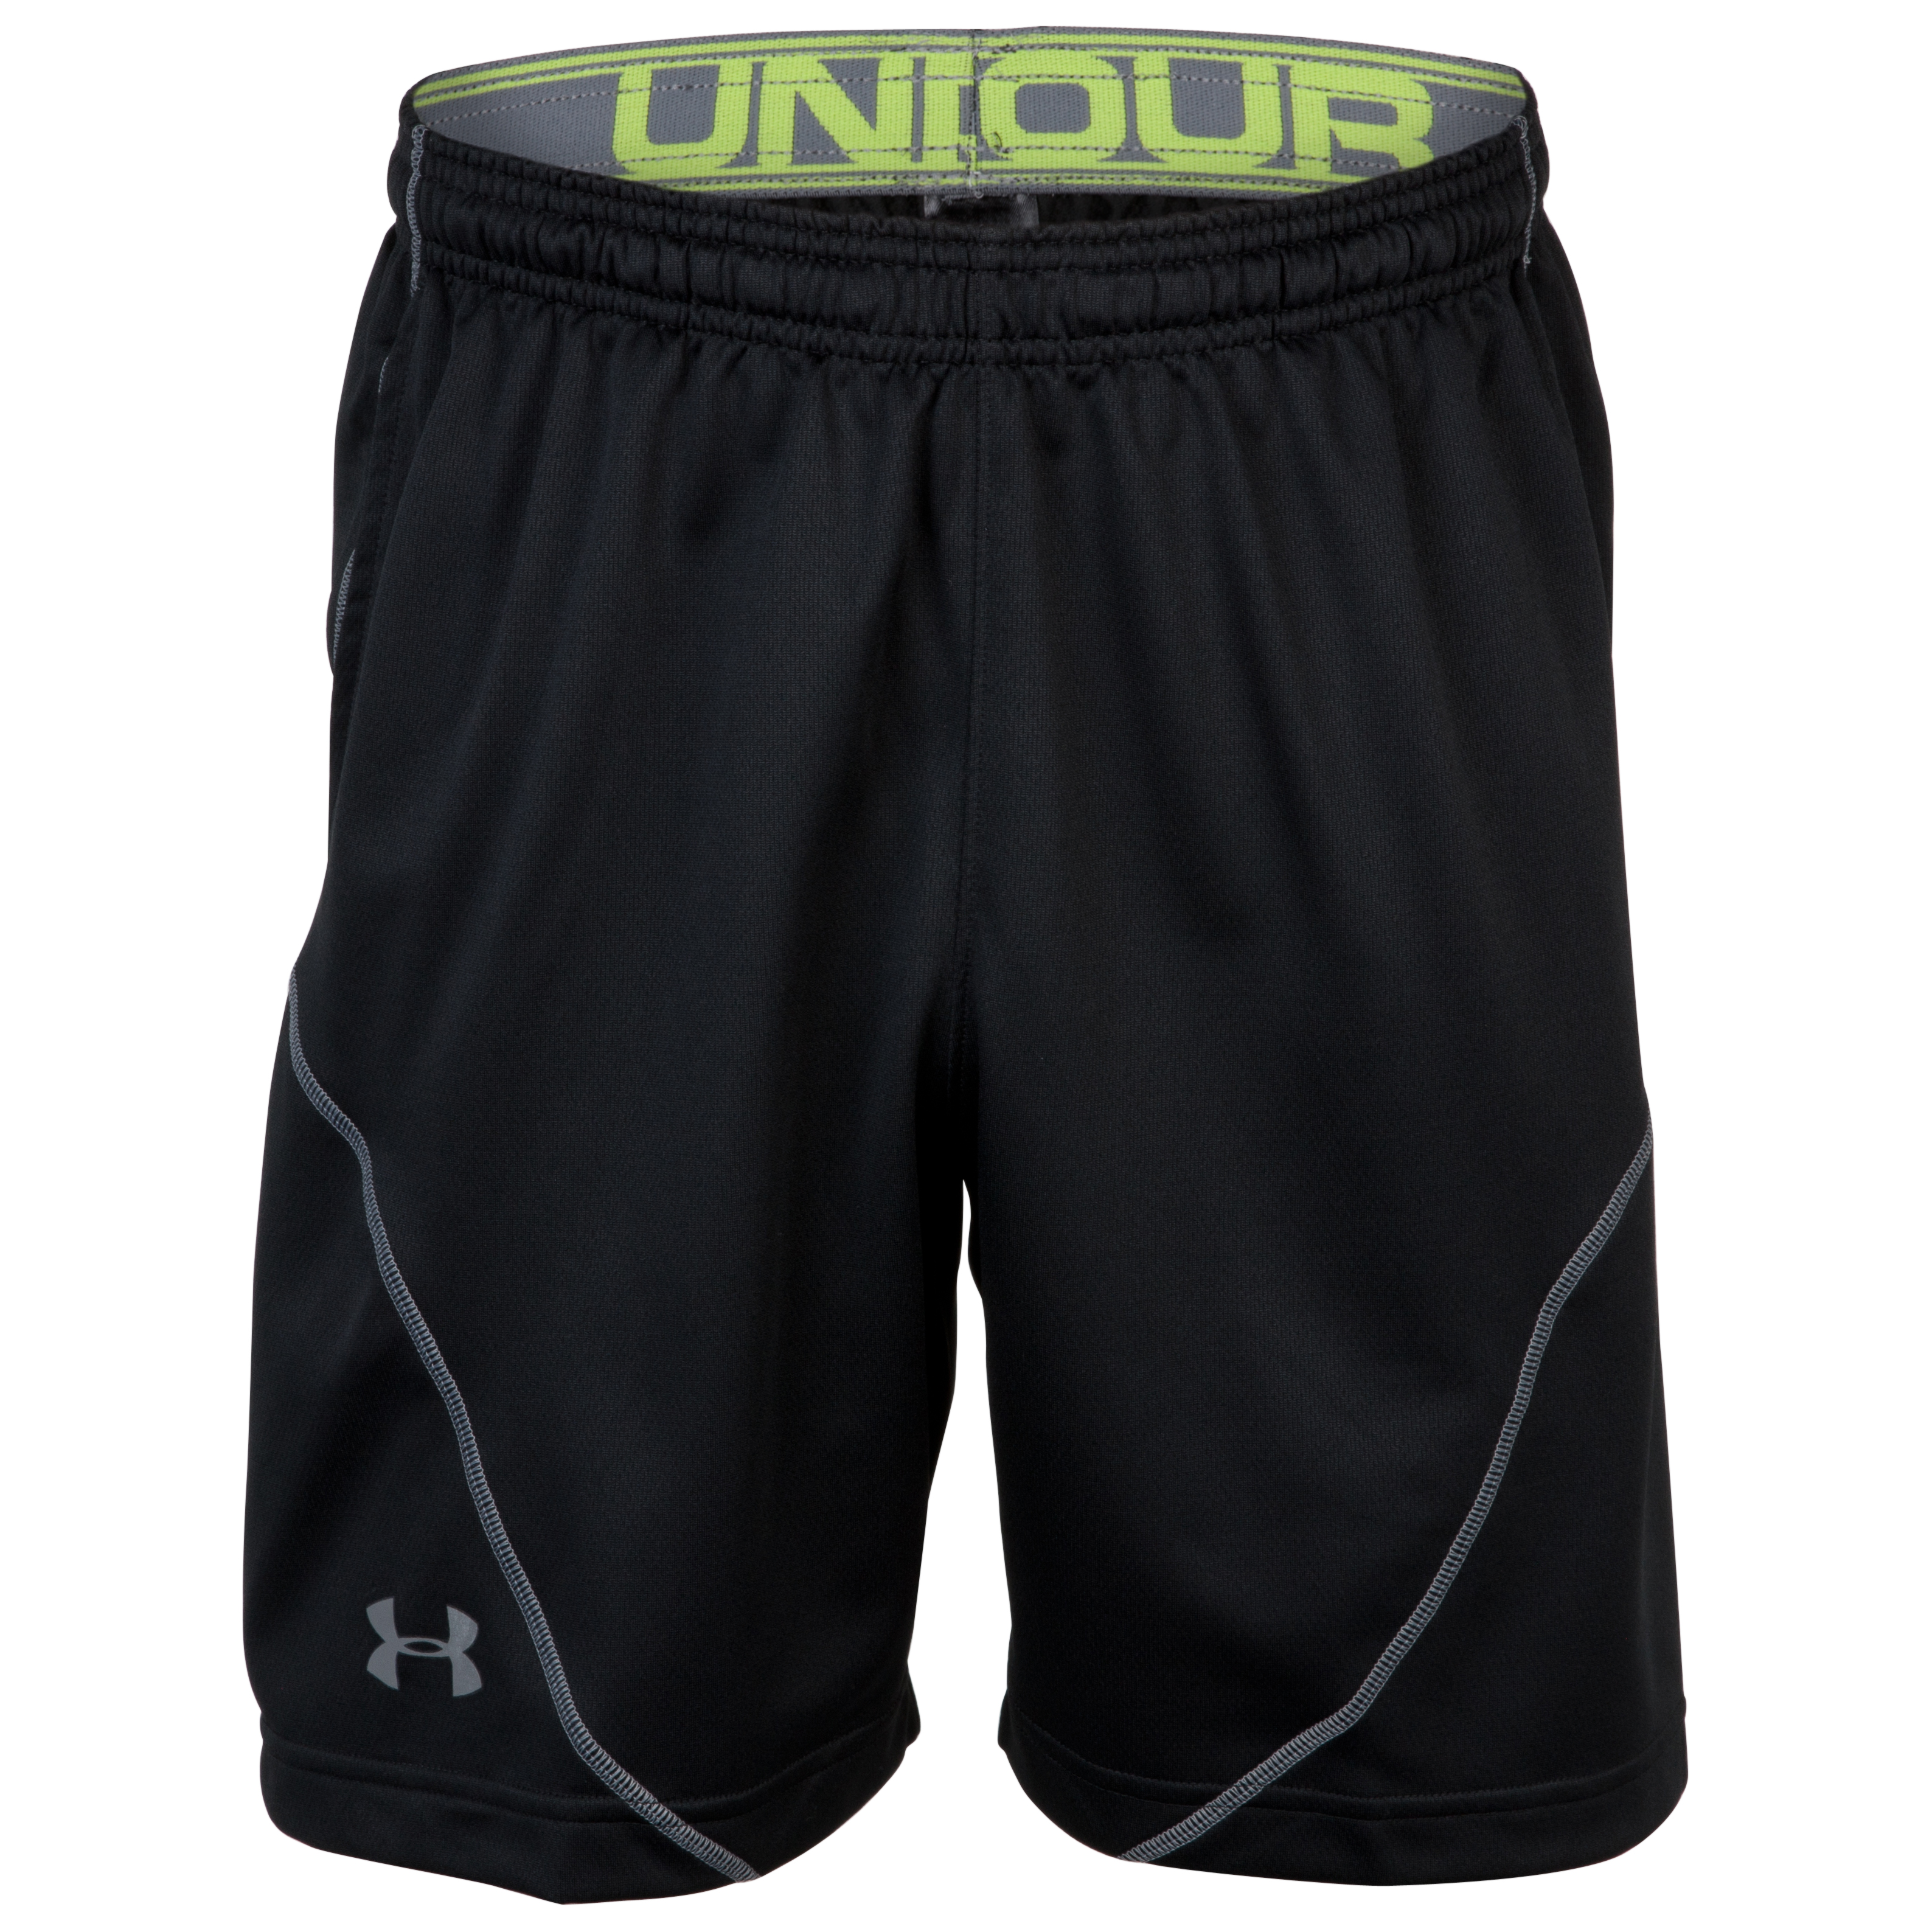 Under Armour Catalyst Shorts - Black